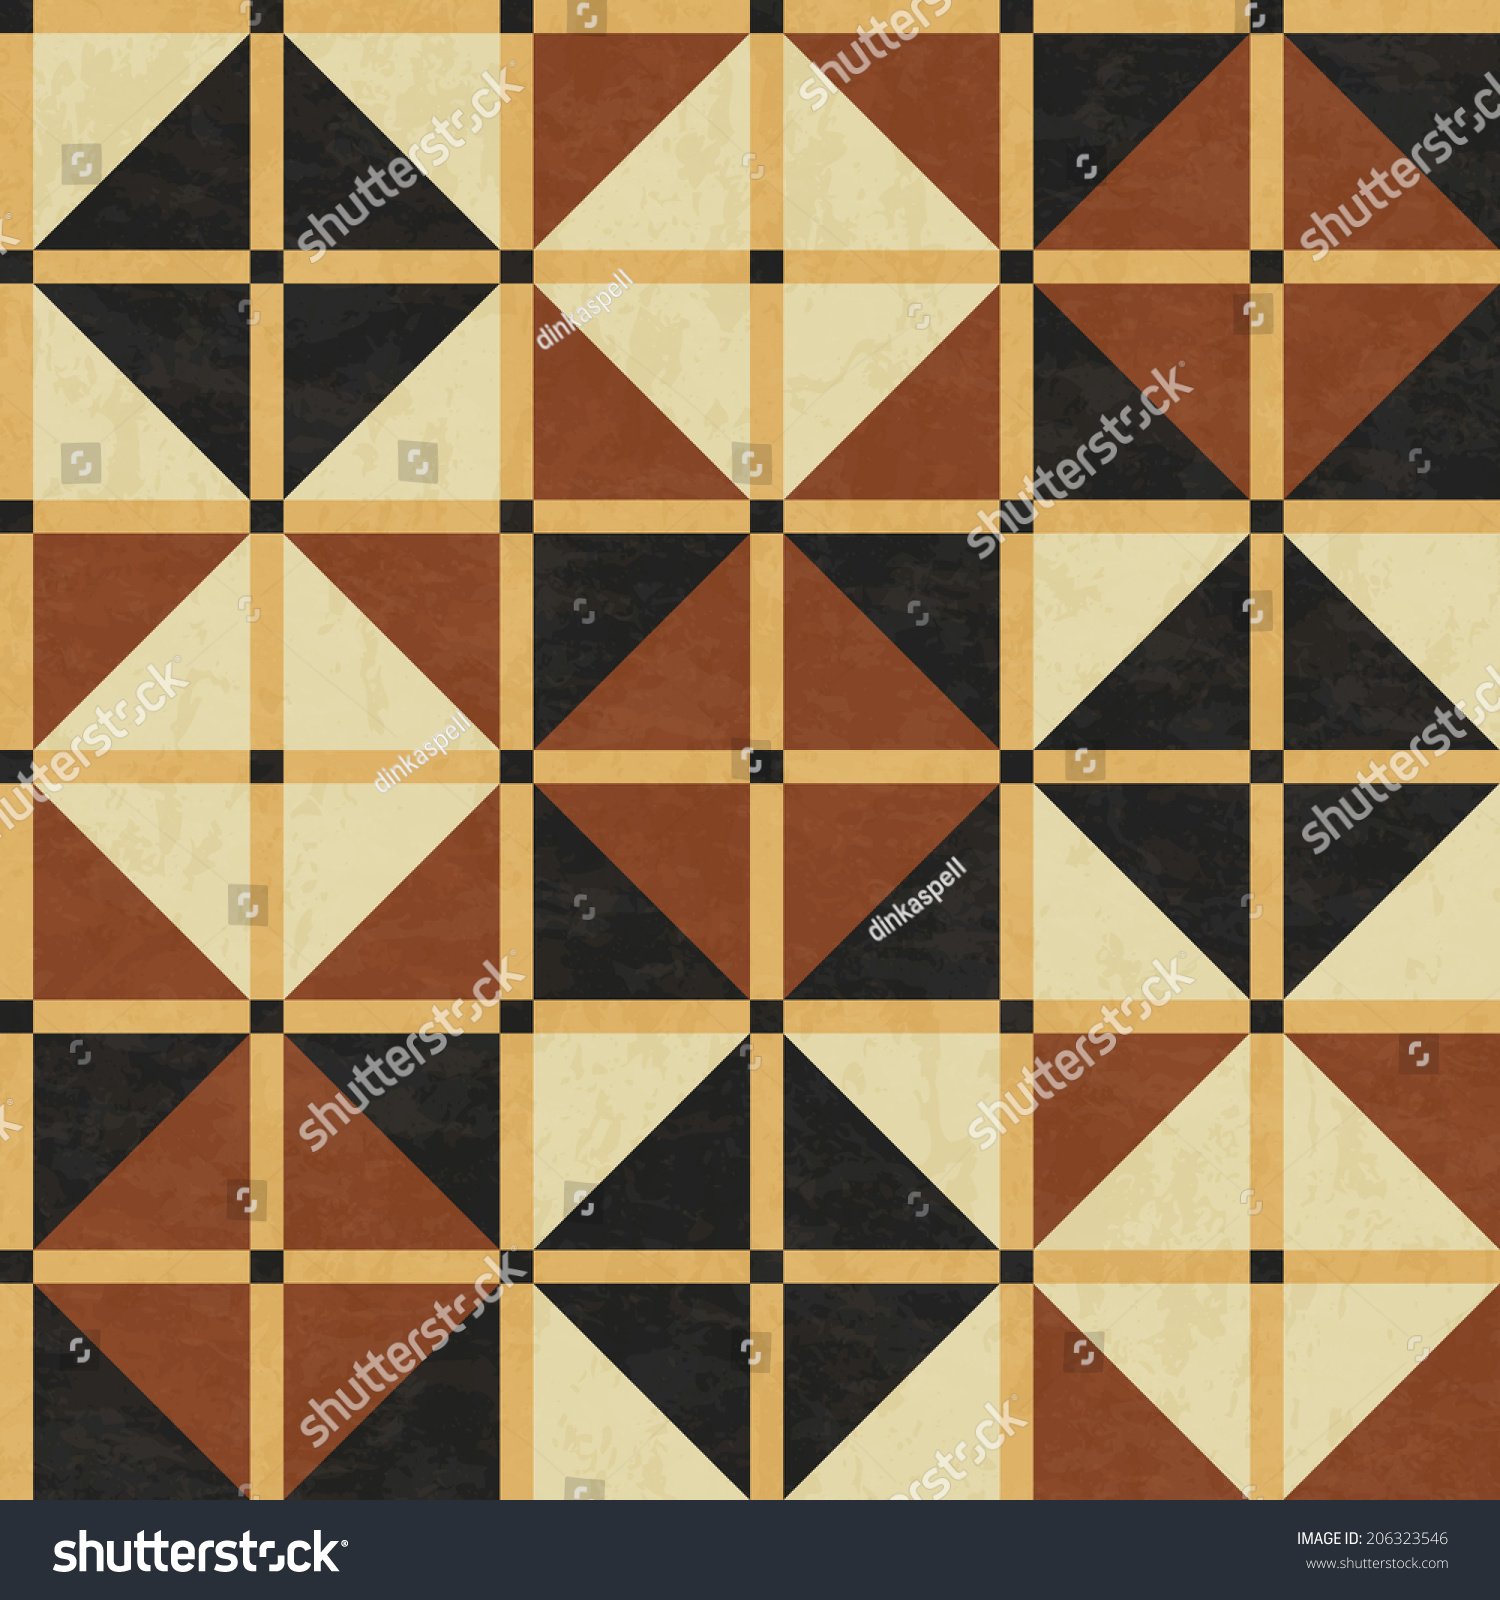 brown marble floor tiles abstract geometric pattern with. Black Bedroom Furniture Sets. Home Design Ideas